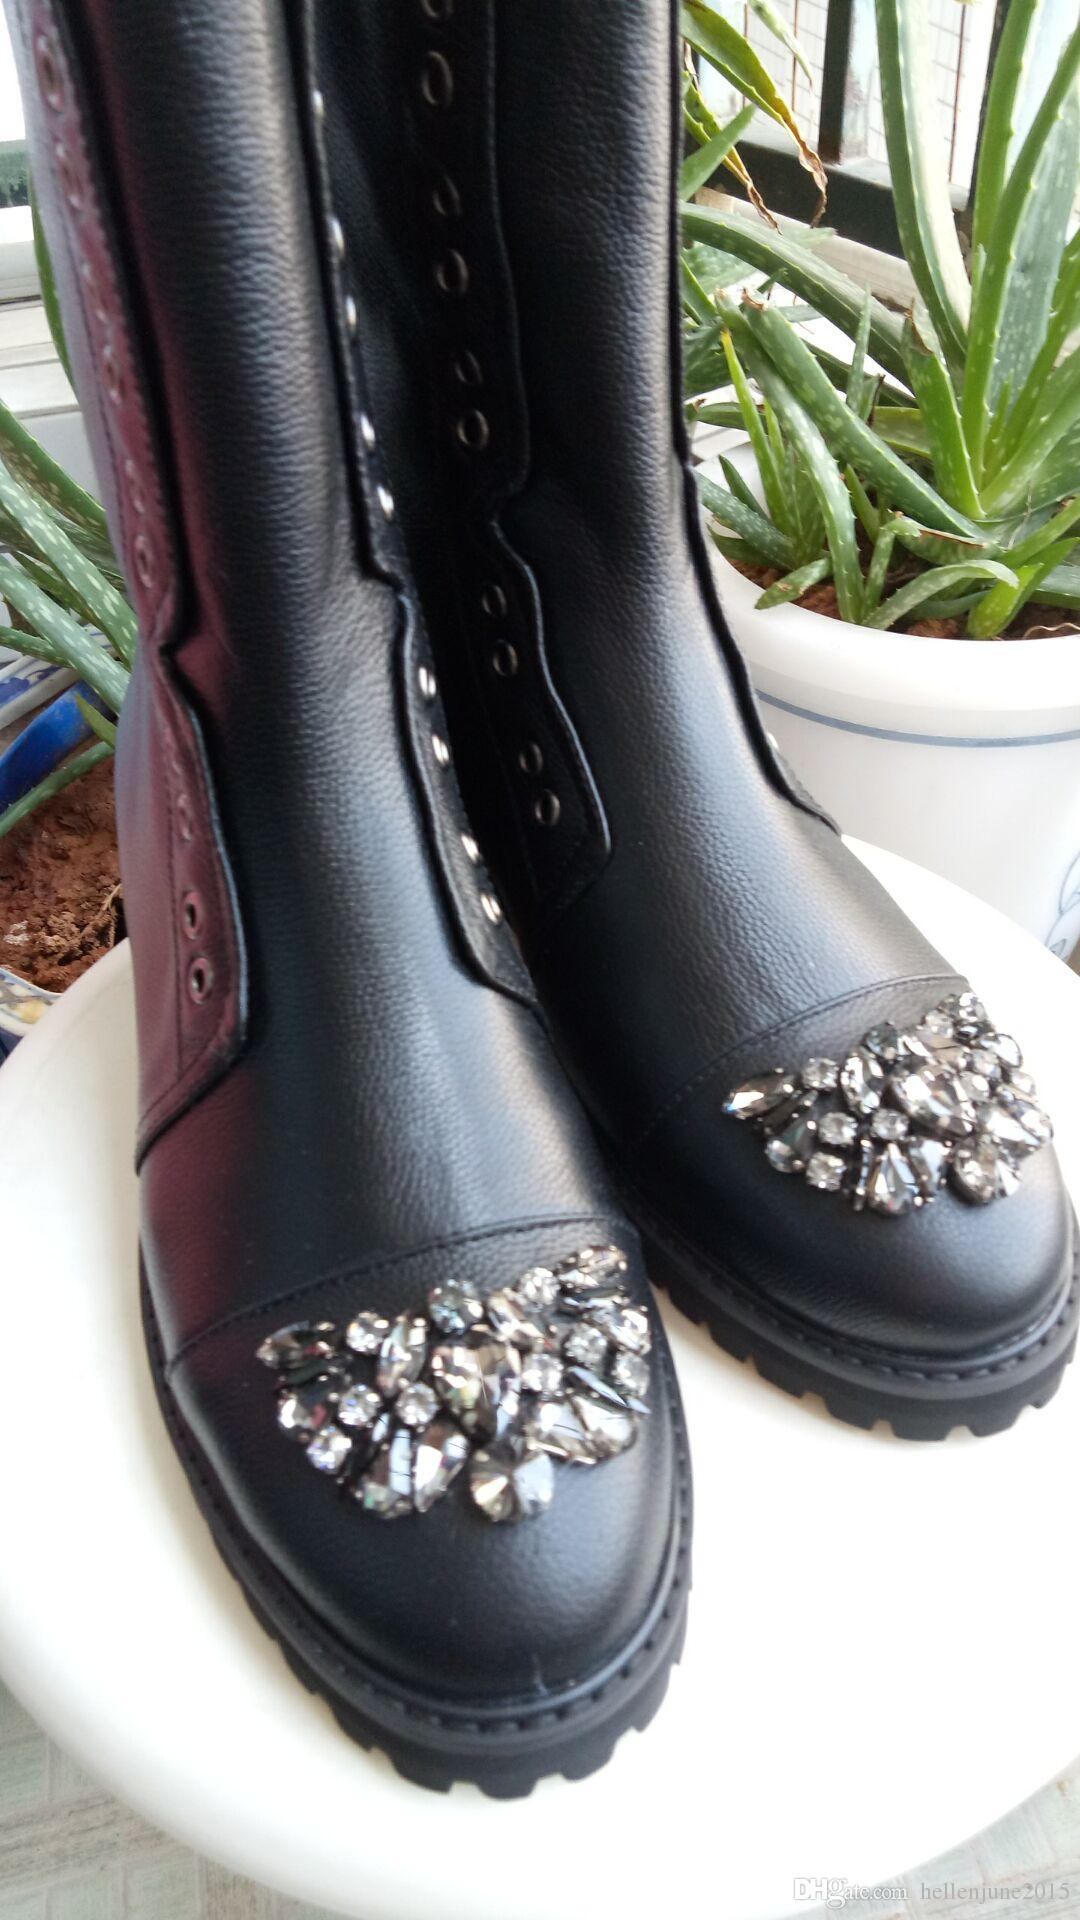 European classic luxury style, ladies boots, boots, Martin boots, Paris catwalk, pure color leather, soft leather, cortical Rhinestone trim,